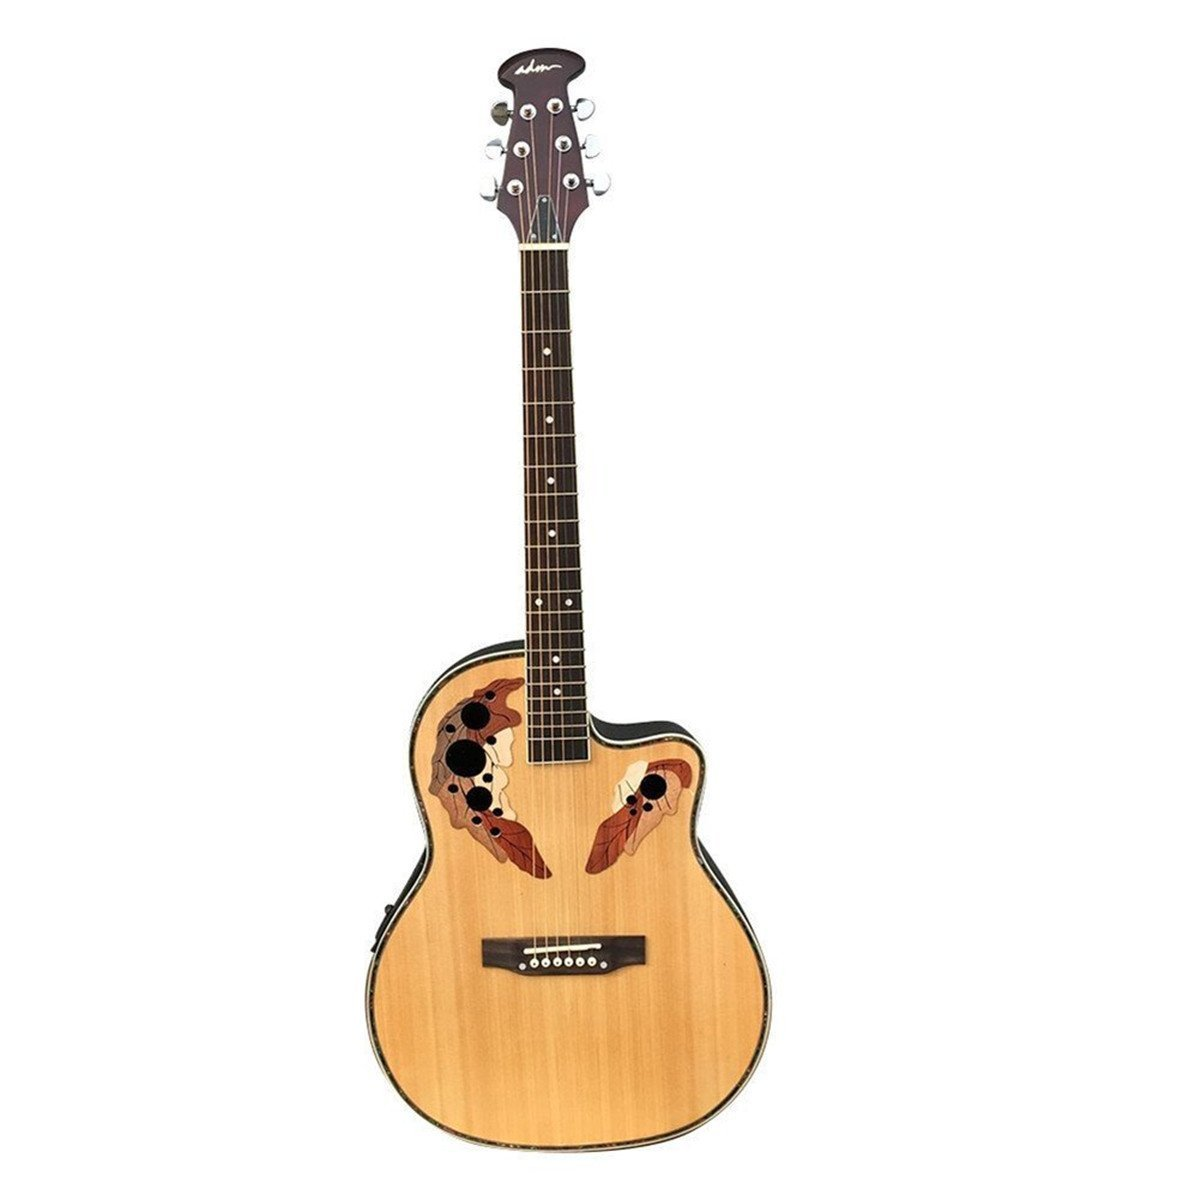 ADM Full Size Acoustic Electric Cutaway Guitar, Round Back Mutil Hole with 4-Band EQ, Natural